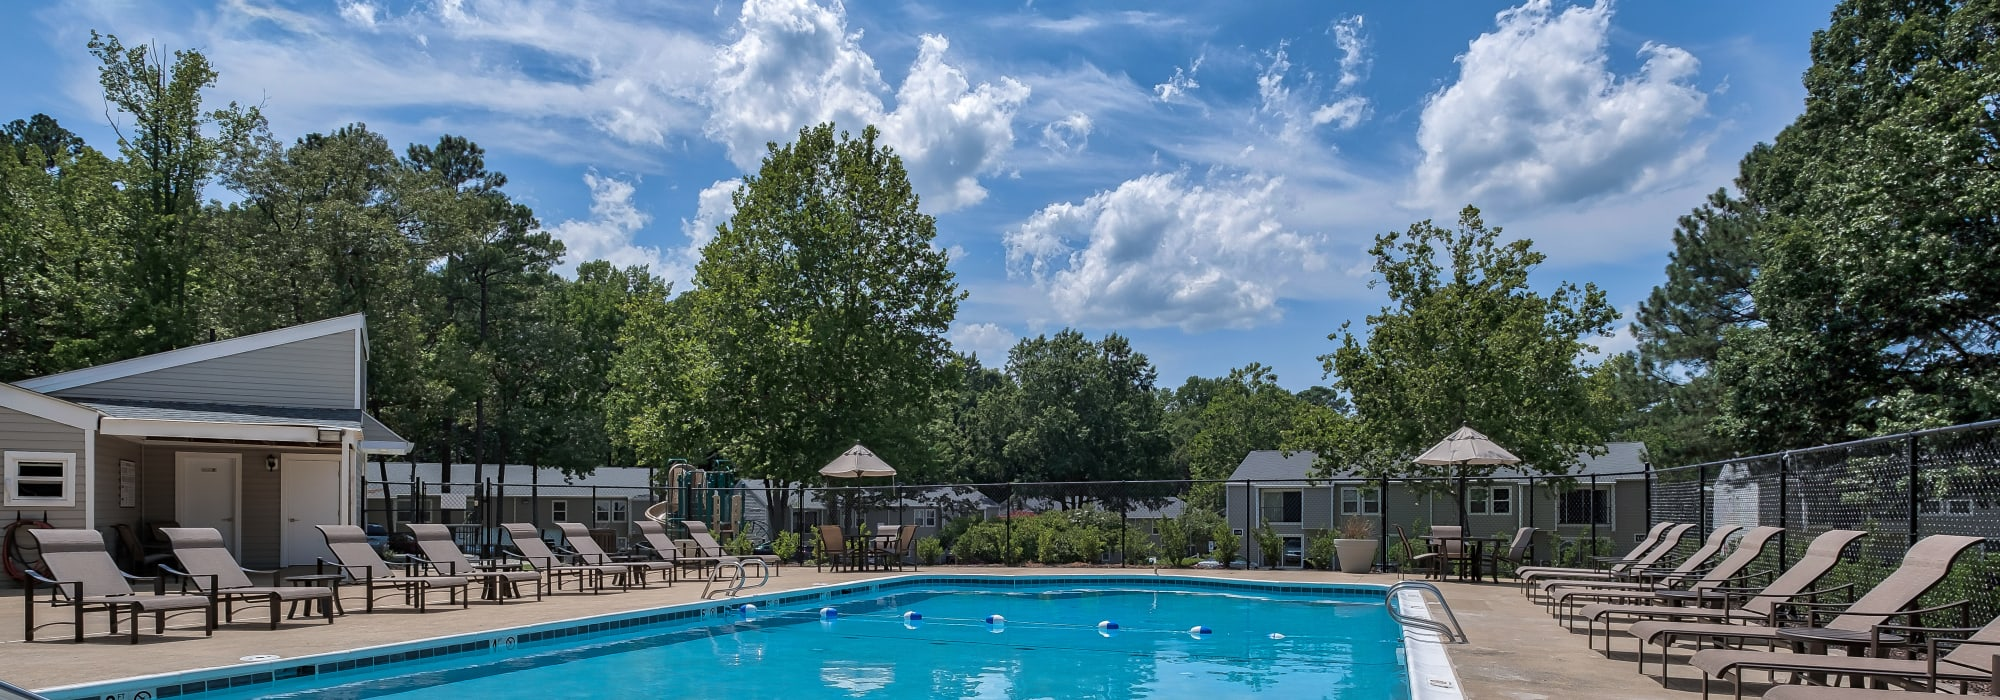 Learn more about our apartment community at Woods of Williamsburg Apartments in Williamsburg